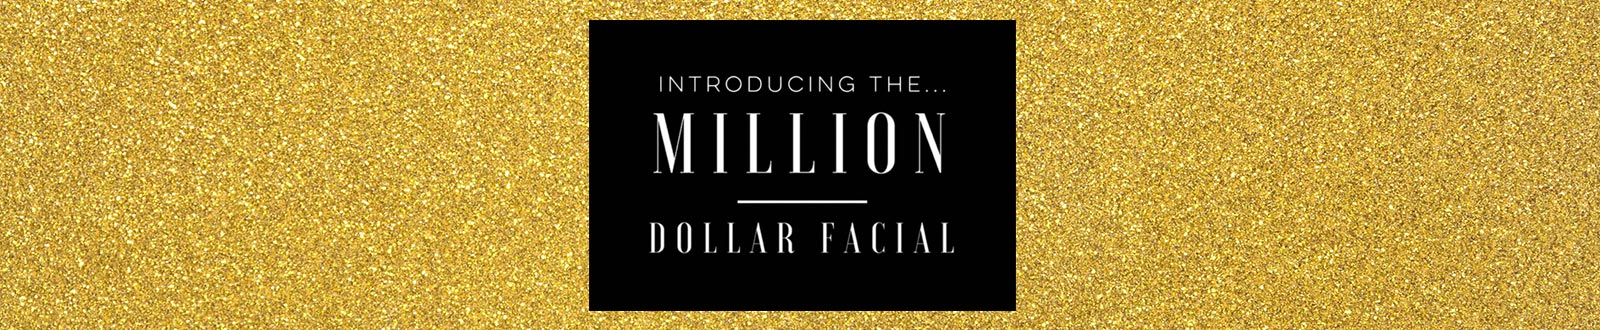 shai-hair-and-beauty-million-dollar-facial